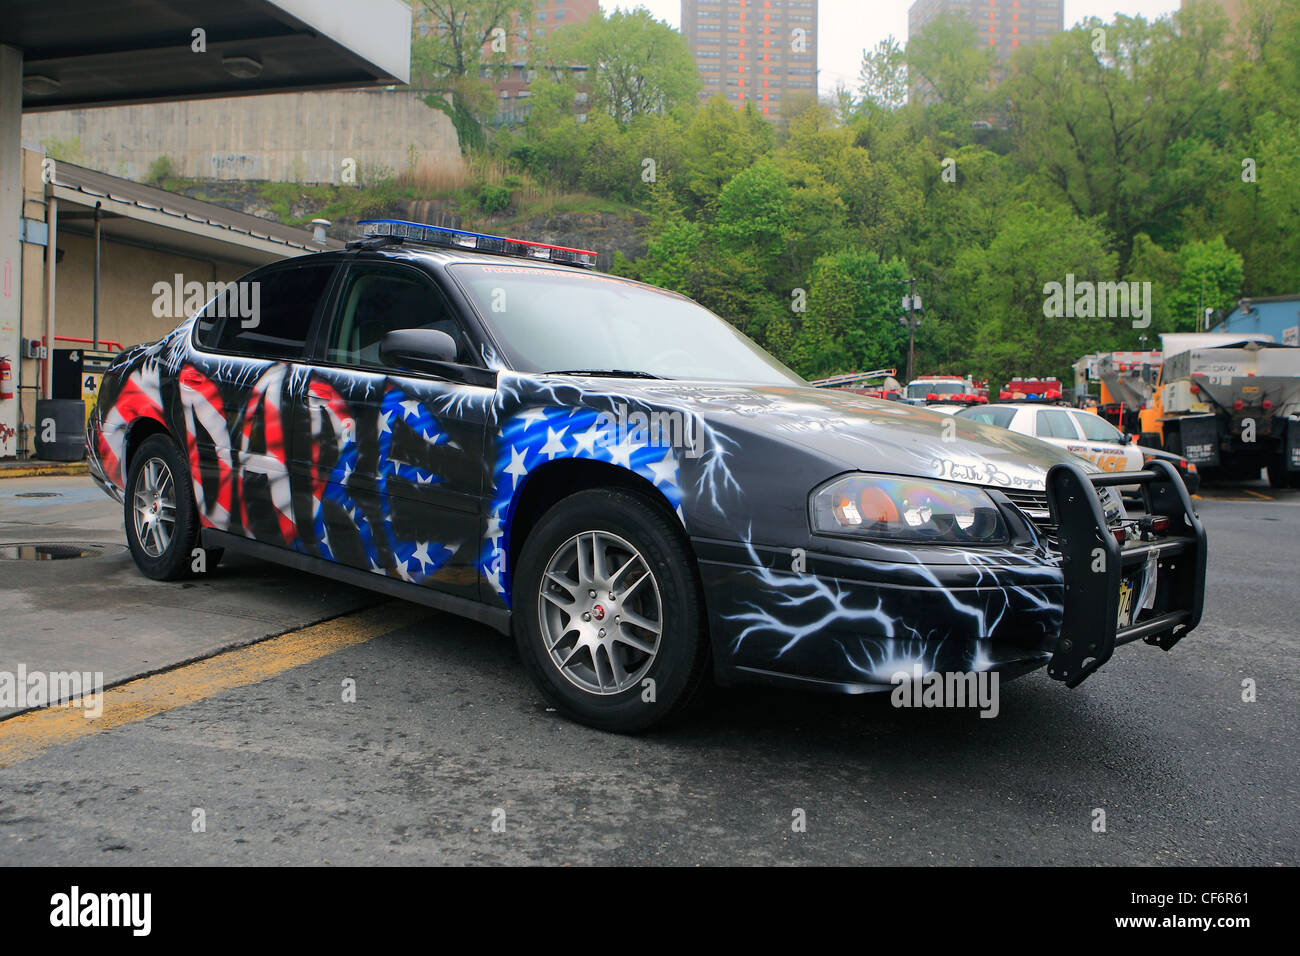 North Bergen Police Department D.A.R.E. car - Stock Image